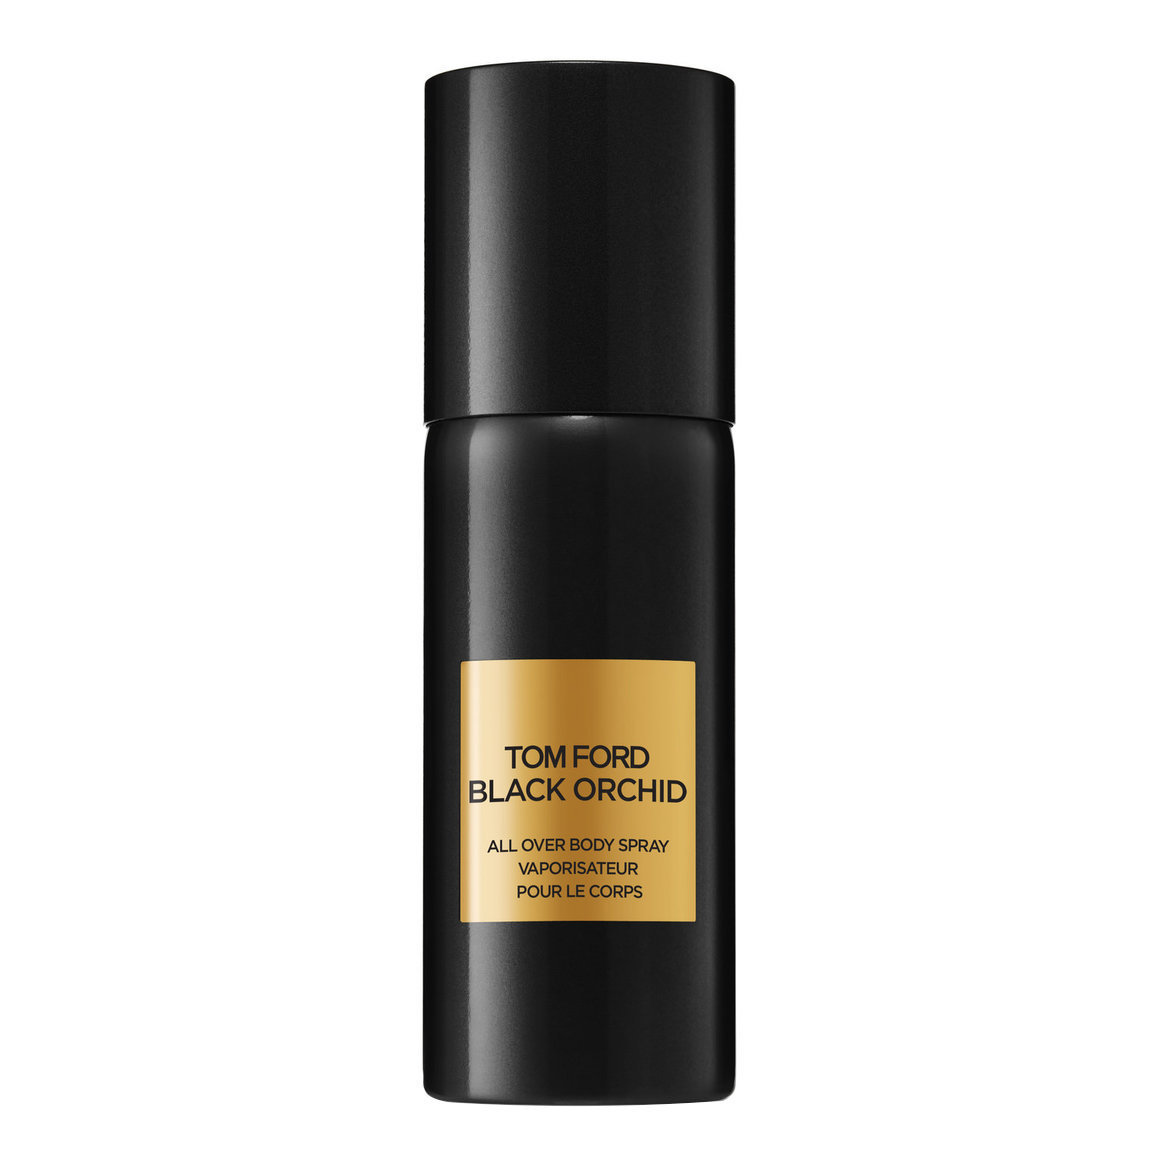 TOM FORD Black Orchid Eau de Parfum All Over Body Spray alternative view 1 - product swatch.